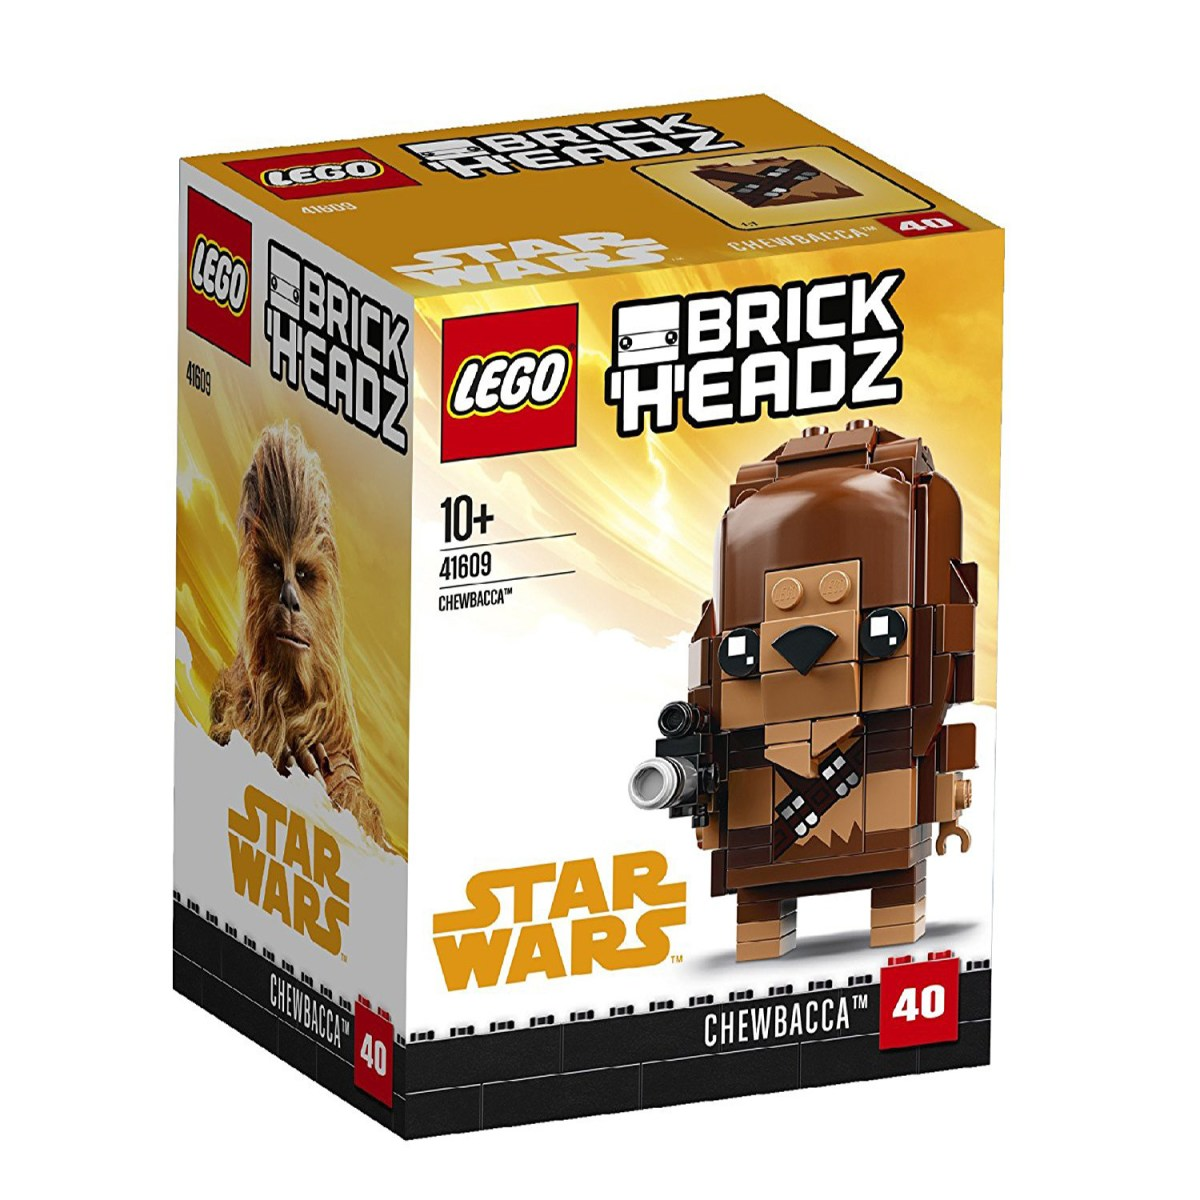 LEGO-Star-Wars-41609-Chewbacca-Brickhead